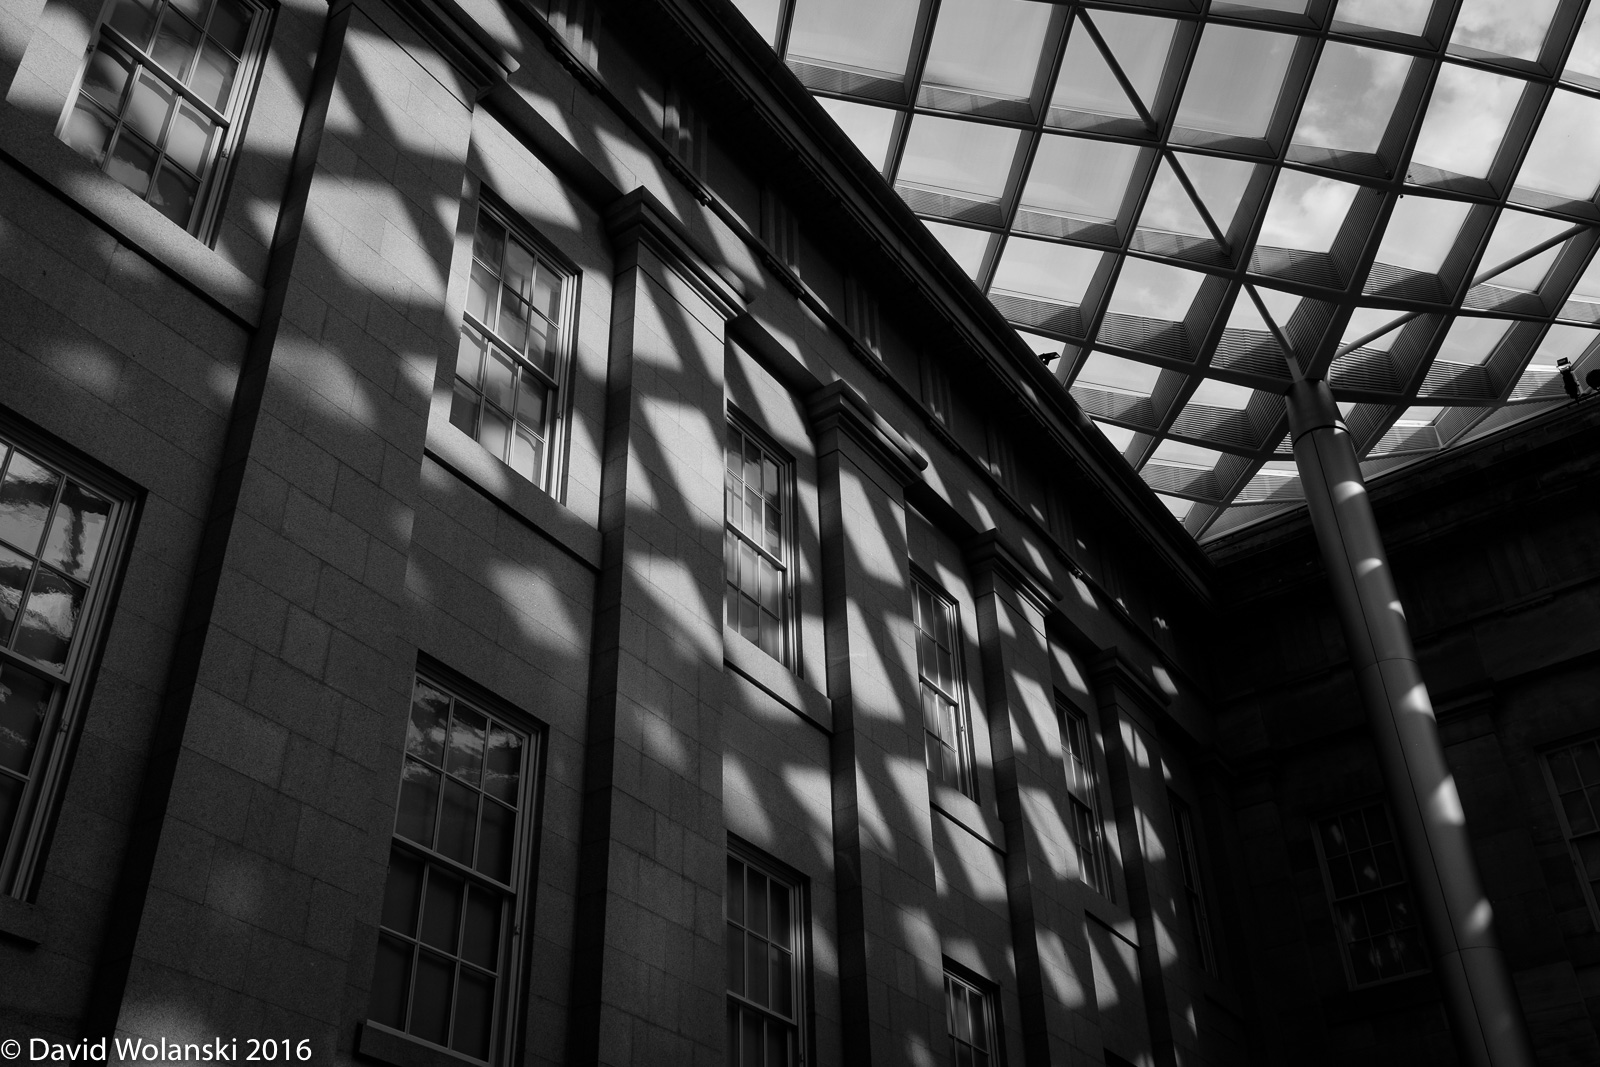 Light and Shadow at the National Portrait Gallery